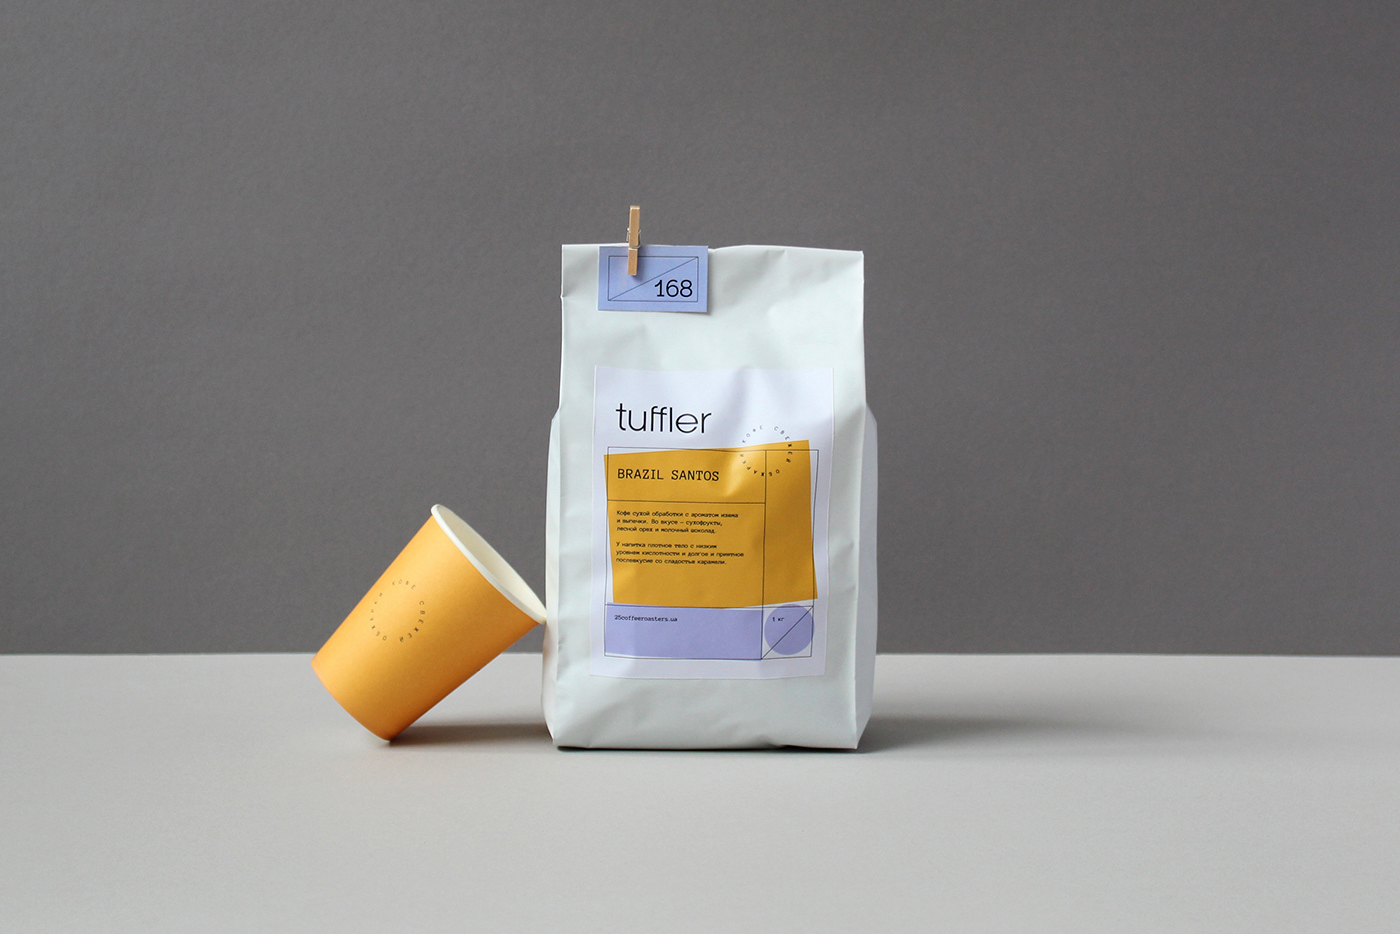 coffee packaging identity Coffee roasting coffee cups Geometric Shapes minimalistic posters orange color Business Cards Coffee